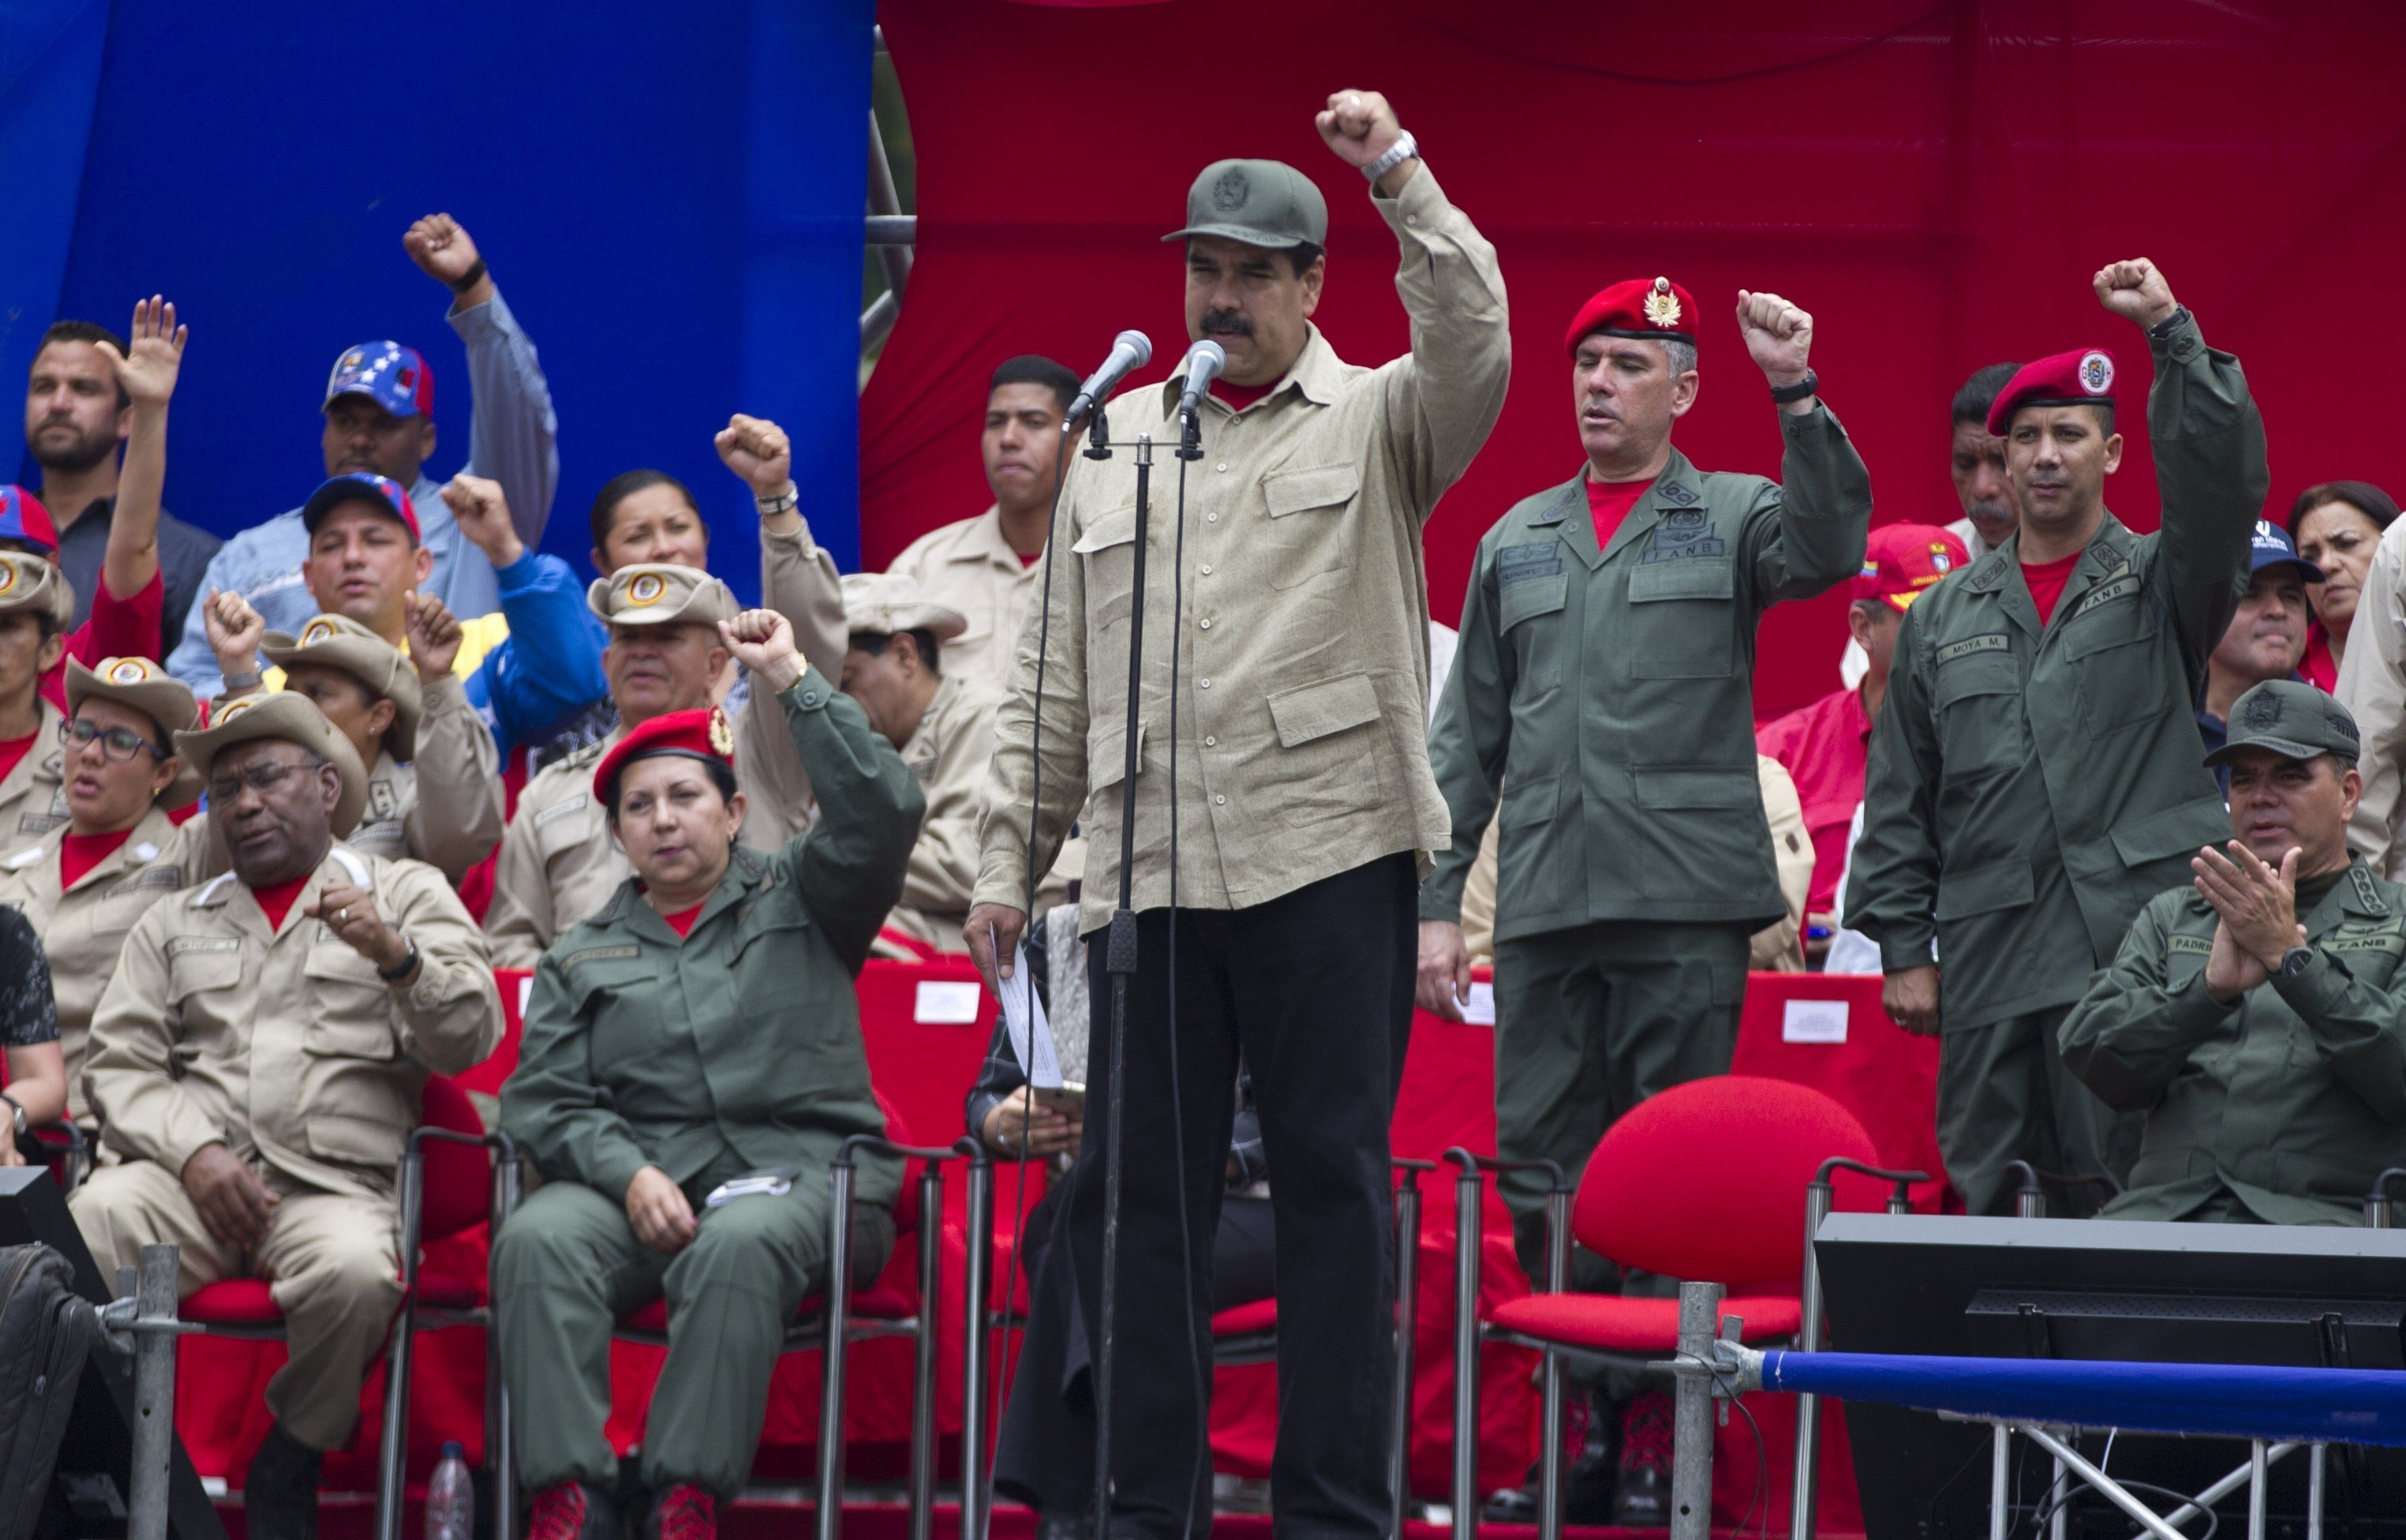 FILE - In this April 17, 2017, photo, Venezuela's President Nicolas Maduro leads the seventh anniversary celebration of the Bolivarian Militia, in front of the Miraflores presidential palace in Caracas, Venezuela.